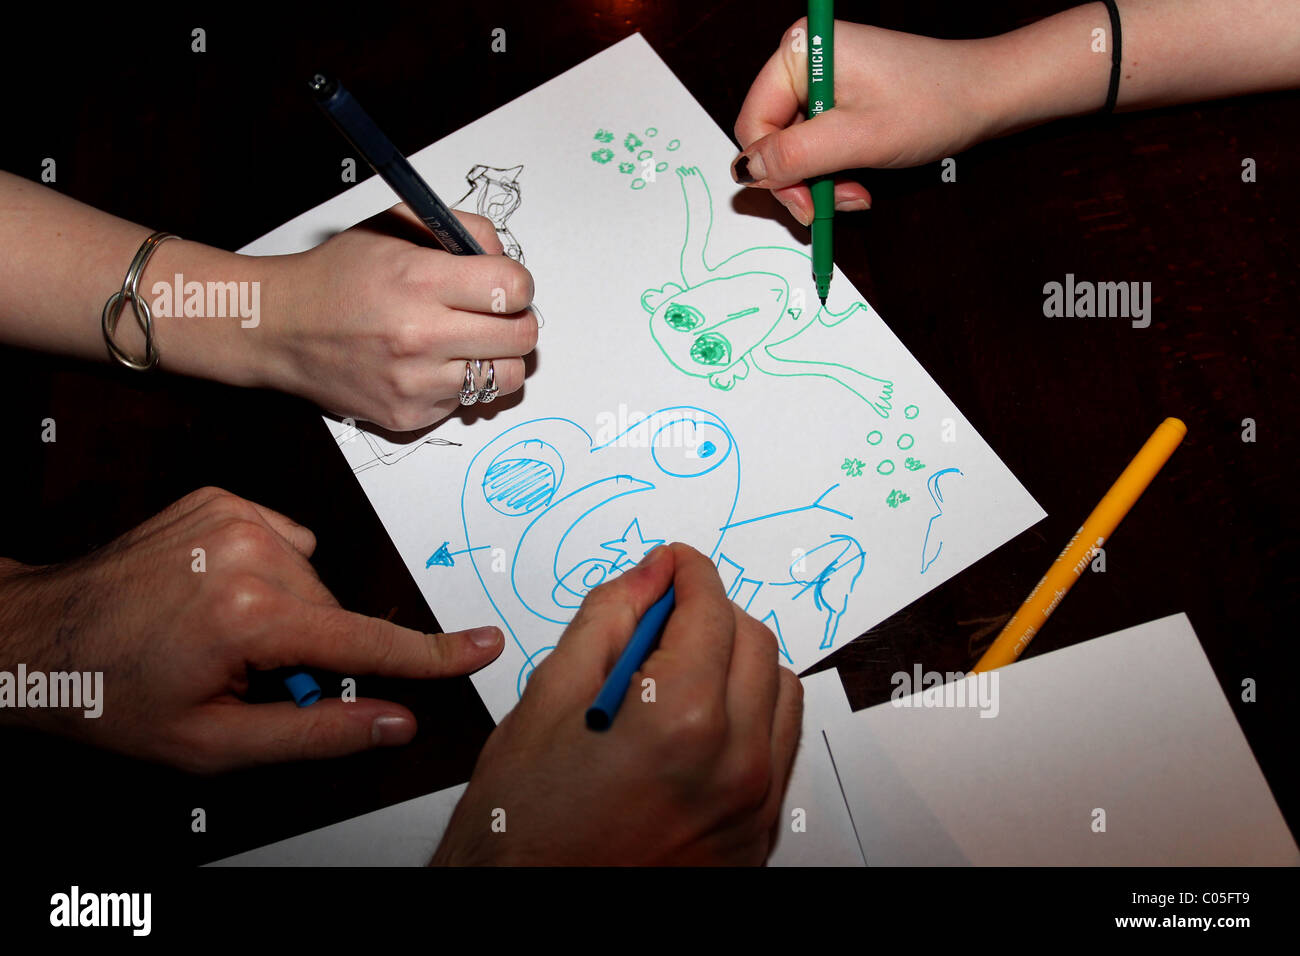 Three people pictured taking part in a Doodle Date, a new